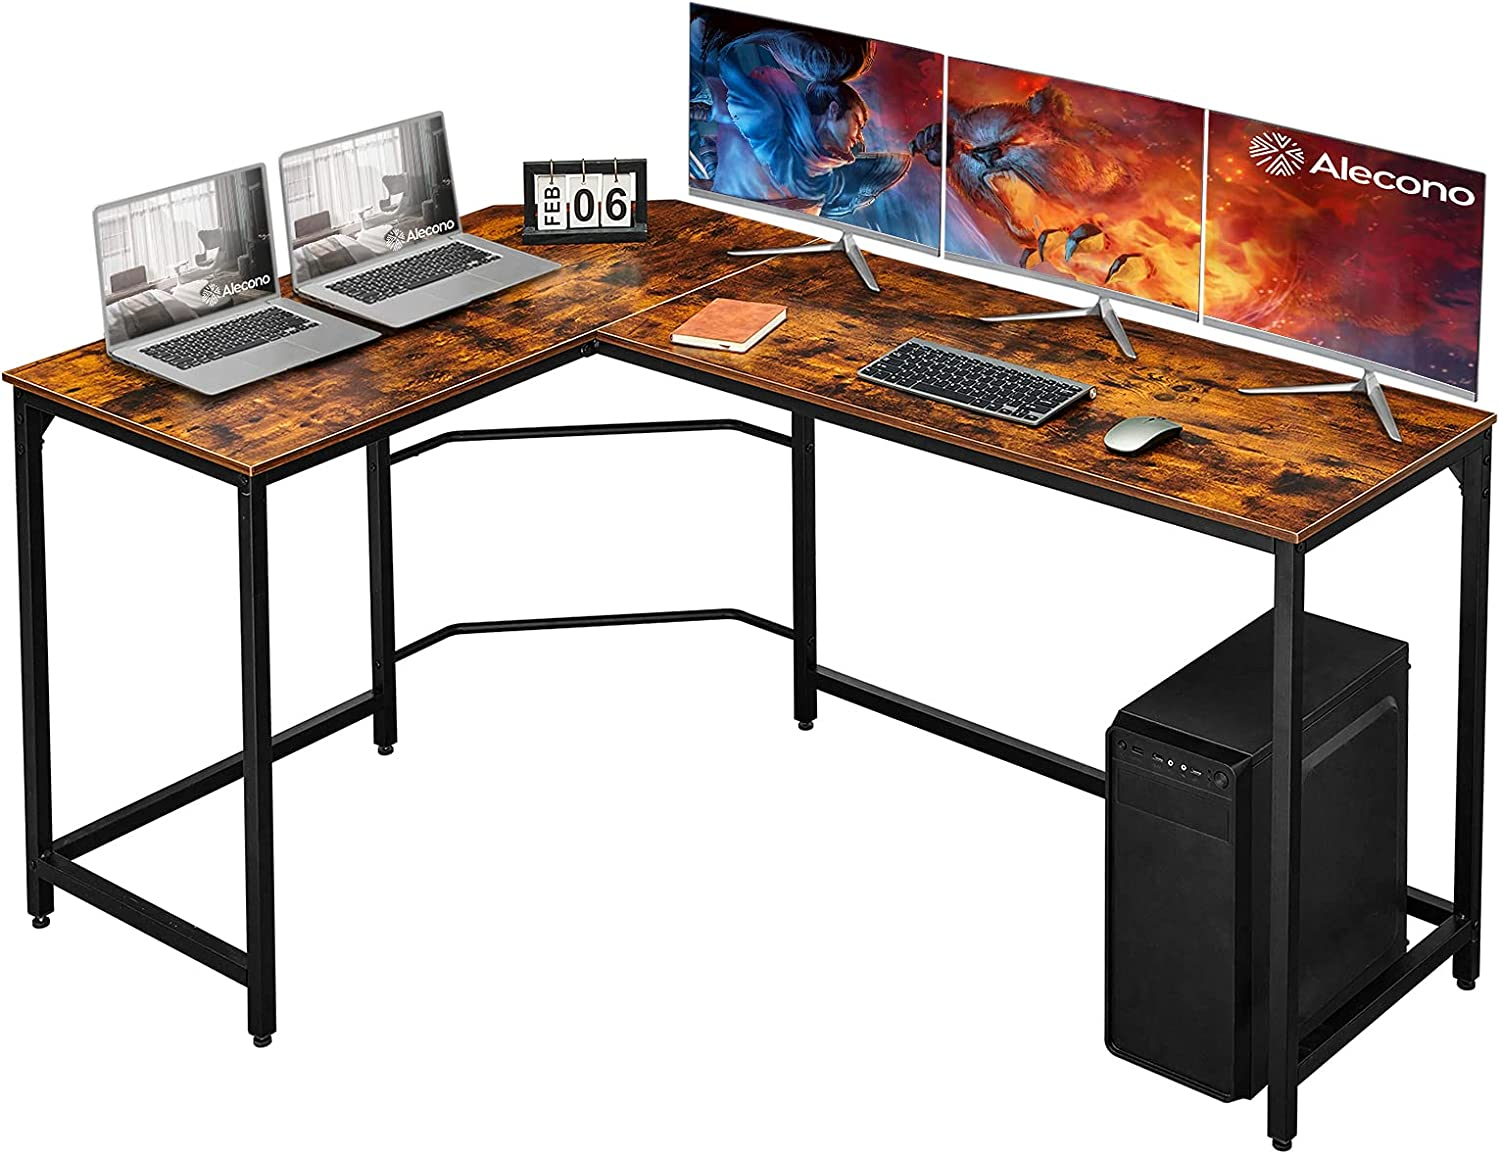 Alecono L Shaped Desk 62 inch Corner Computer Gaming Desk with Large Desktop,Enough legroom Home Office Desk Thicker Steel Structure Sturdy Workstation Table Easy to Assemble and to Clean,Rustic Brown